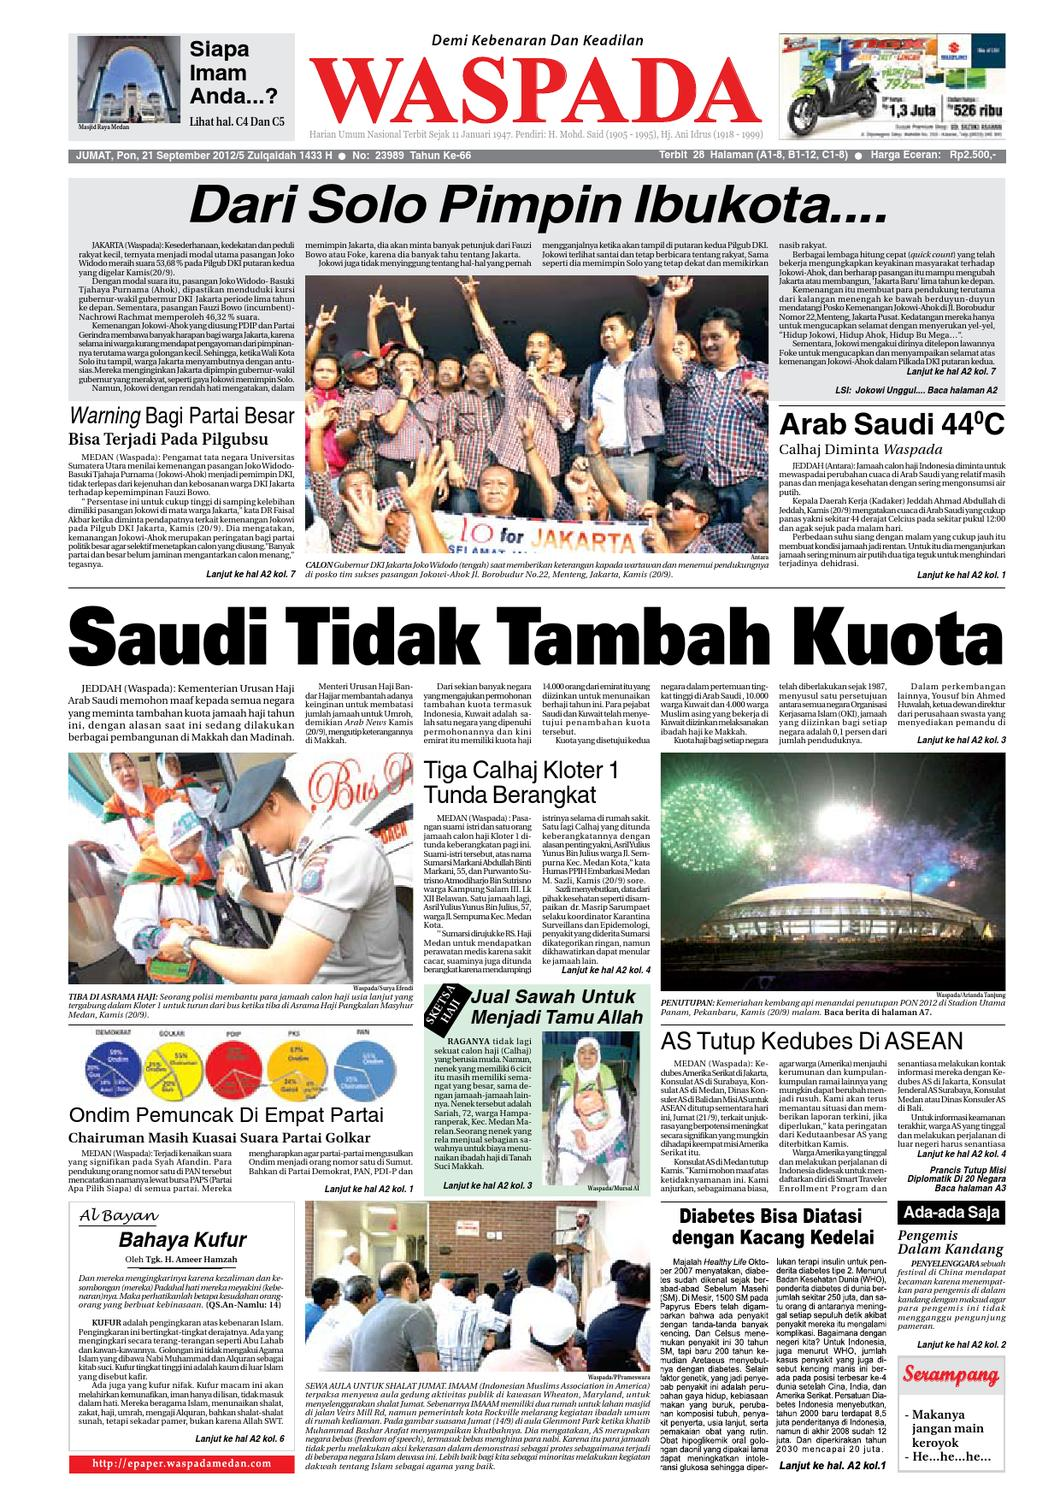 Waspada Jumat 21 September 2012 By Harian Waspada Issuu